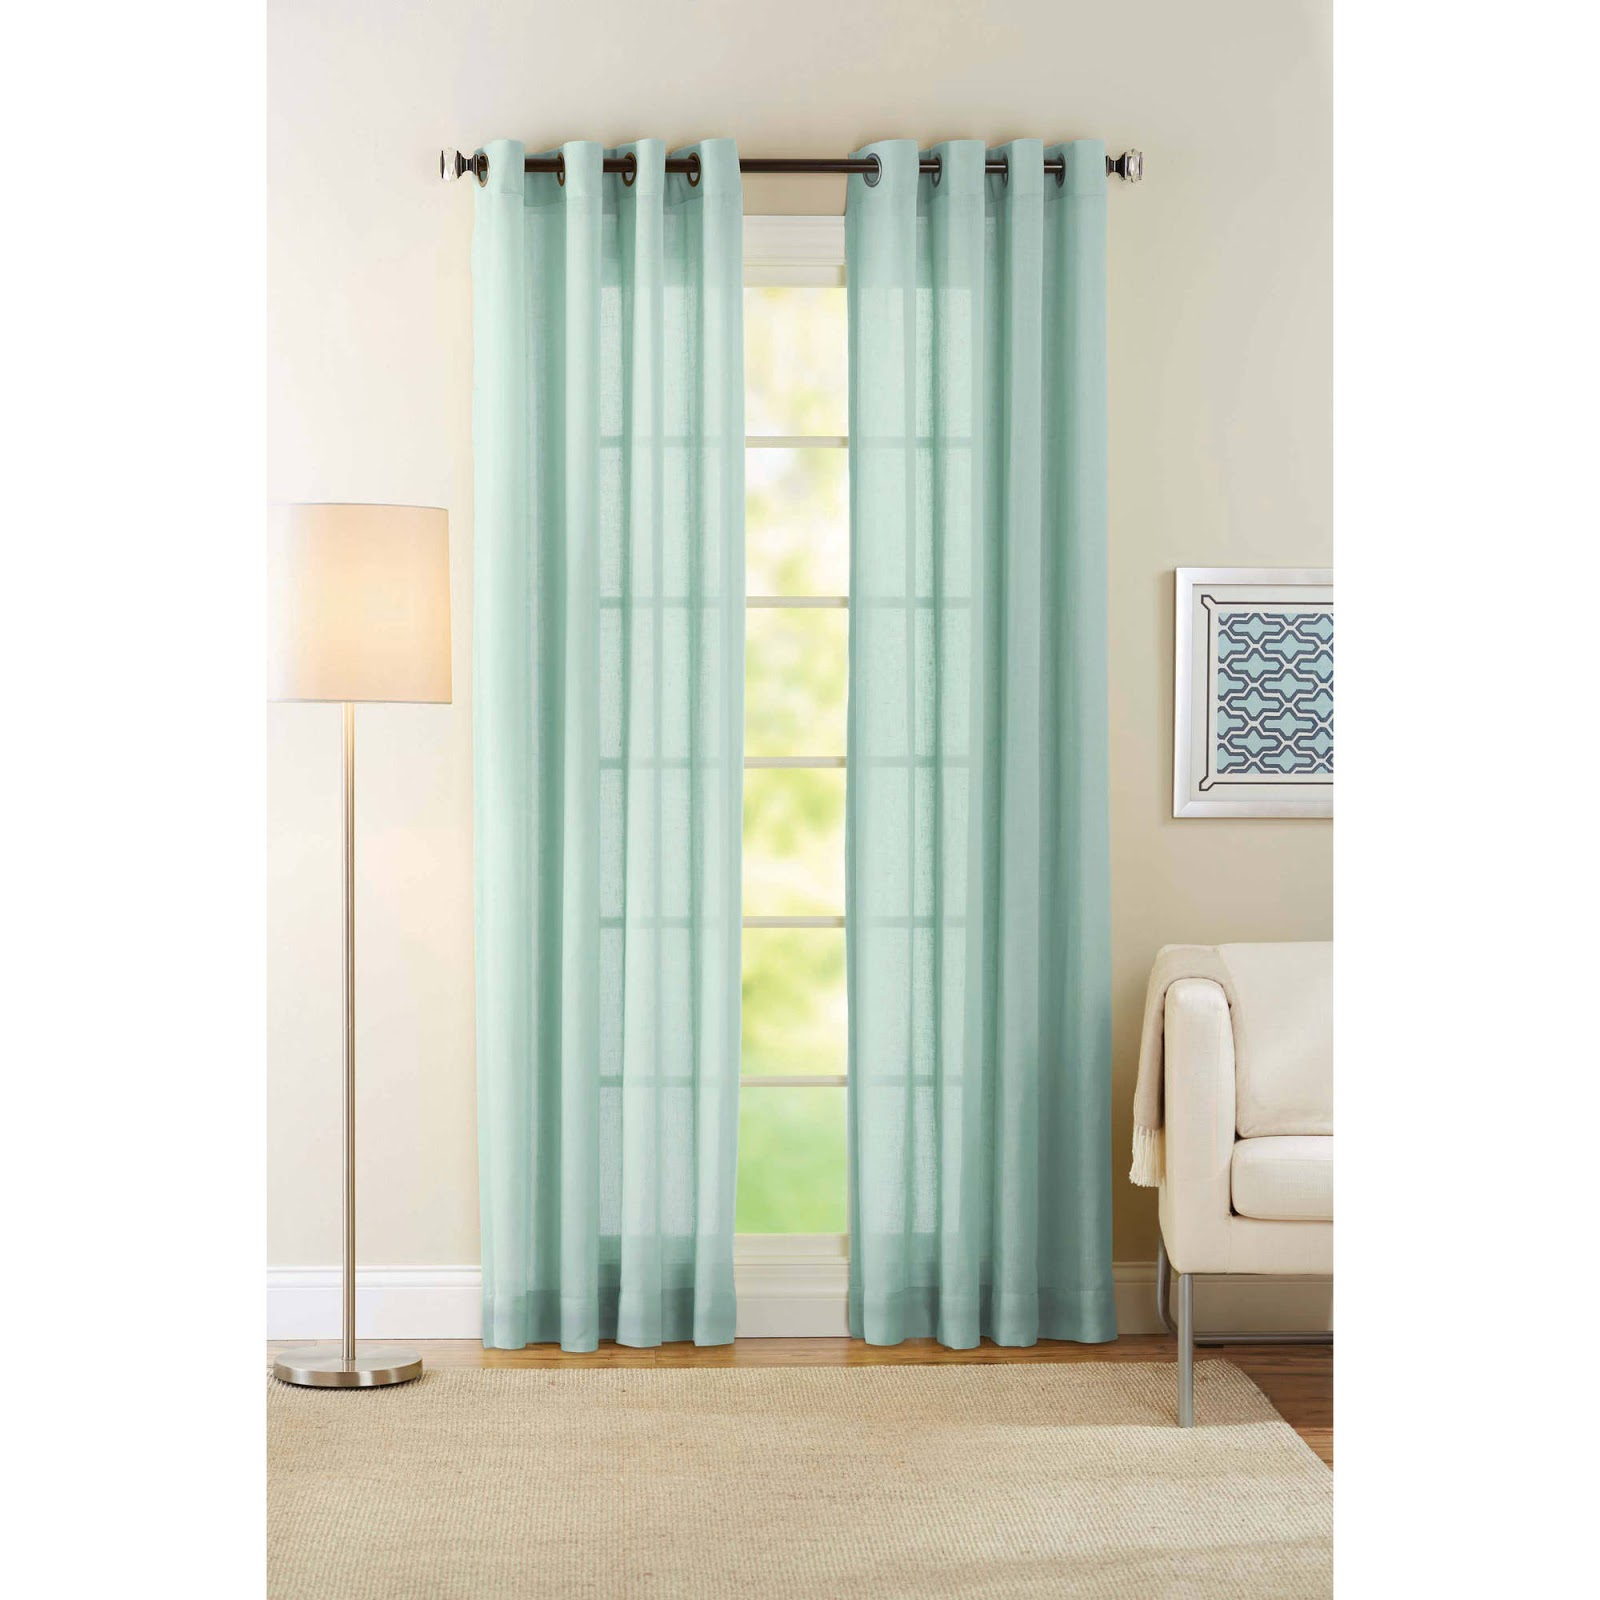 Curtain Room Divider Ikea Track Dividers Ceiling Diy